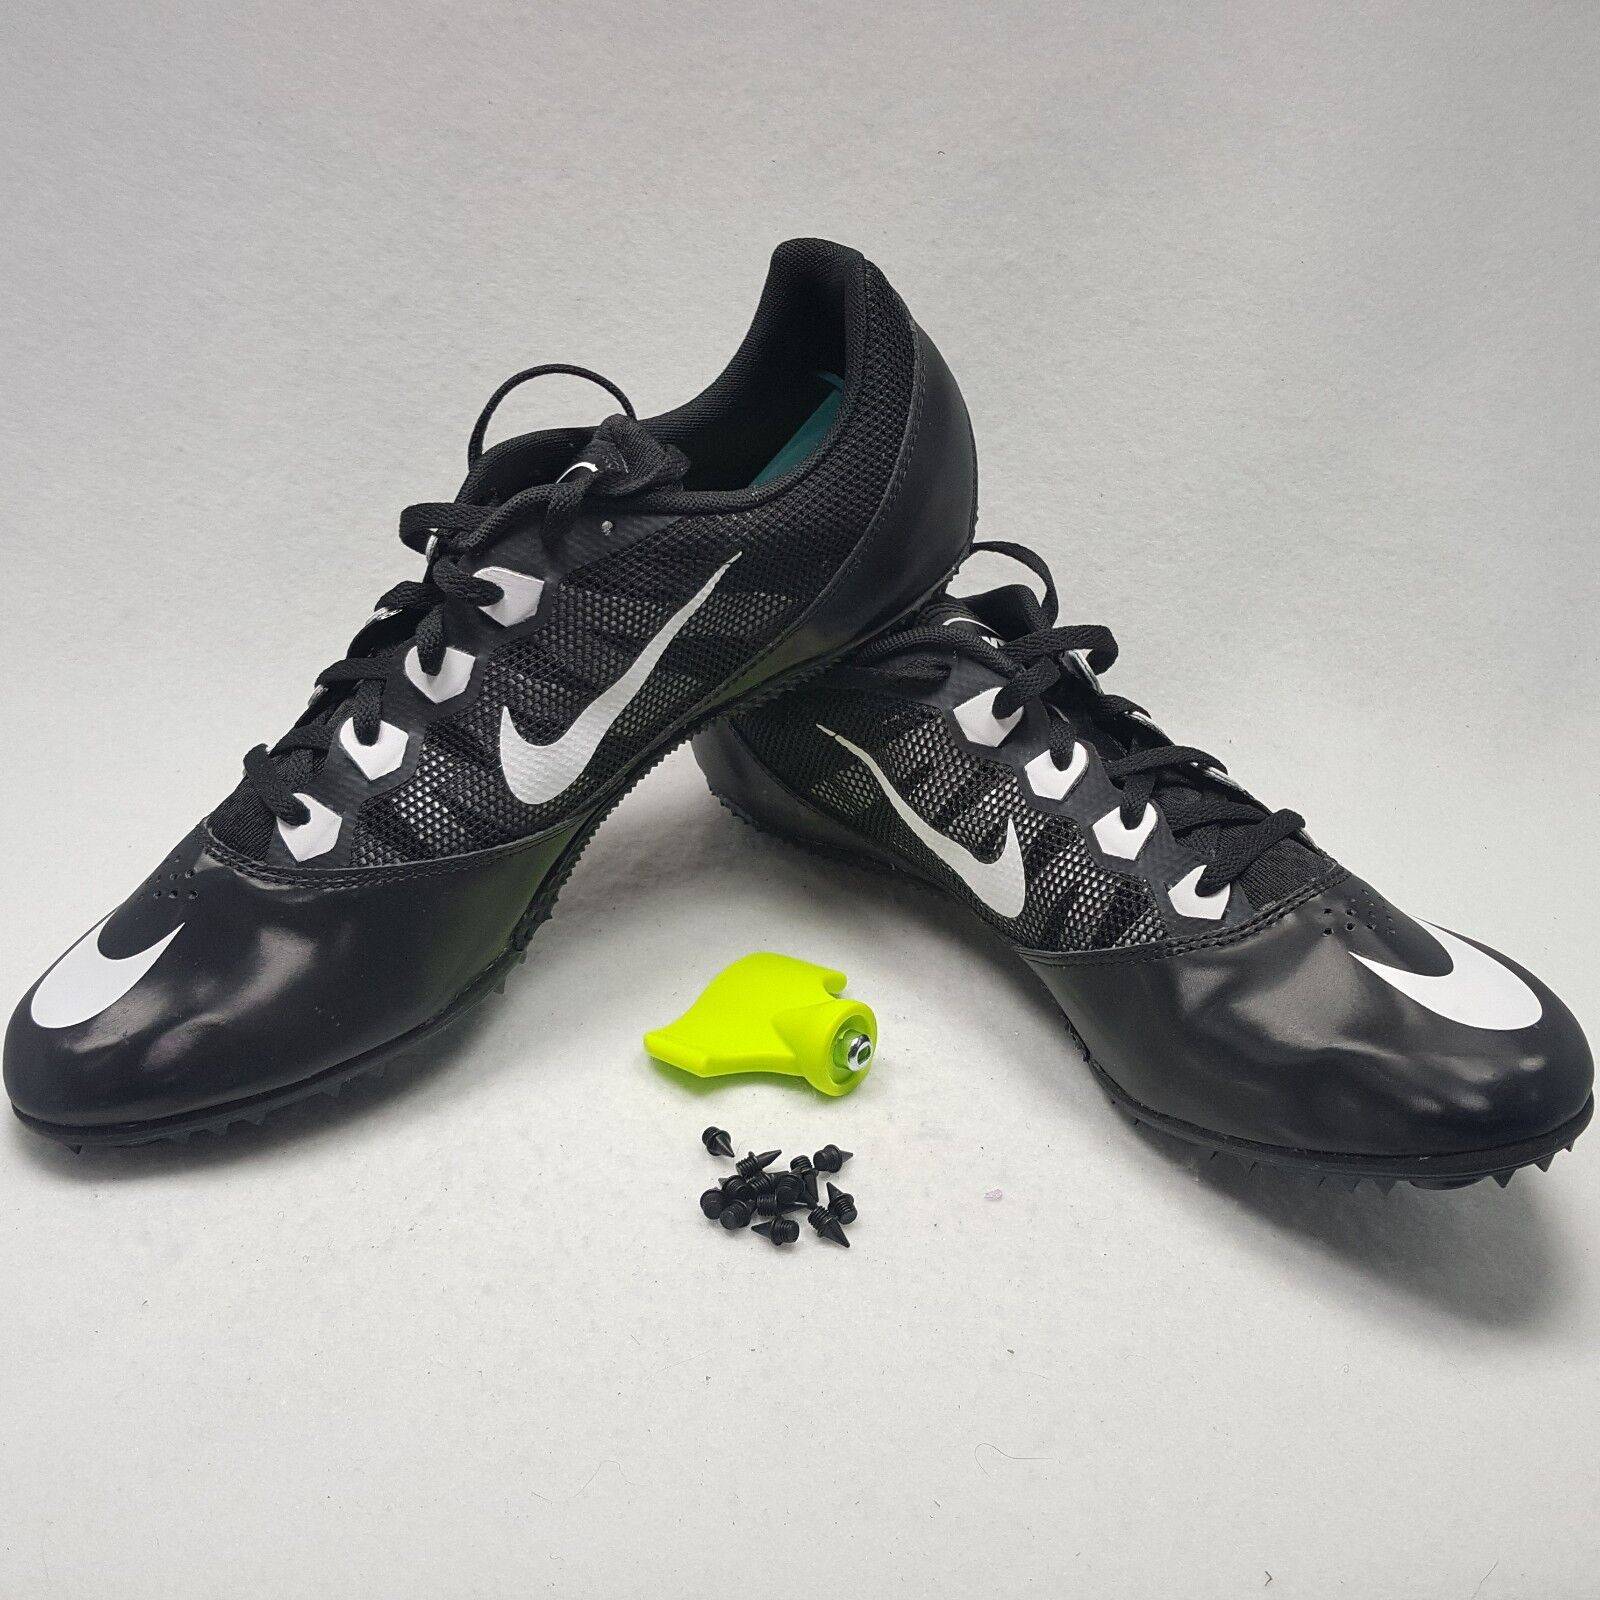 Nike Zoom Rival 7/vii S Racing track/sprint spikes/cleat Men Size 13 black/white